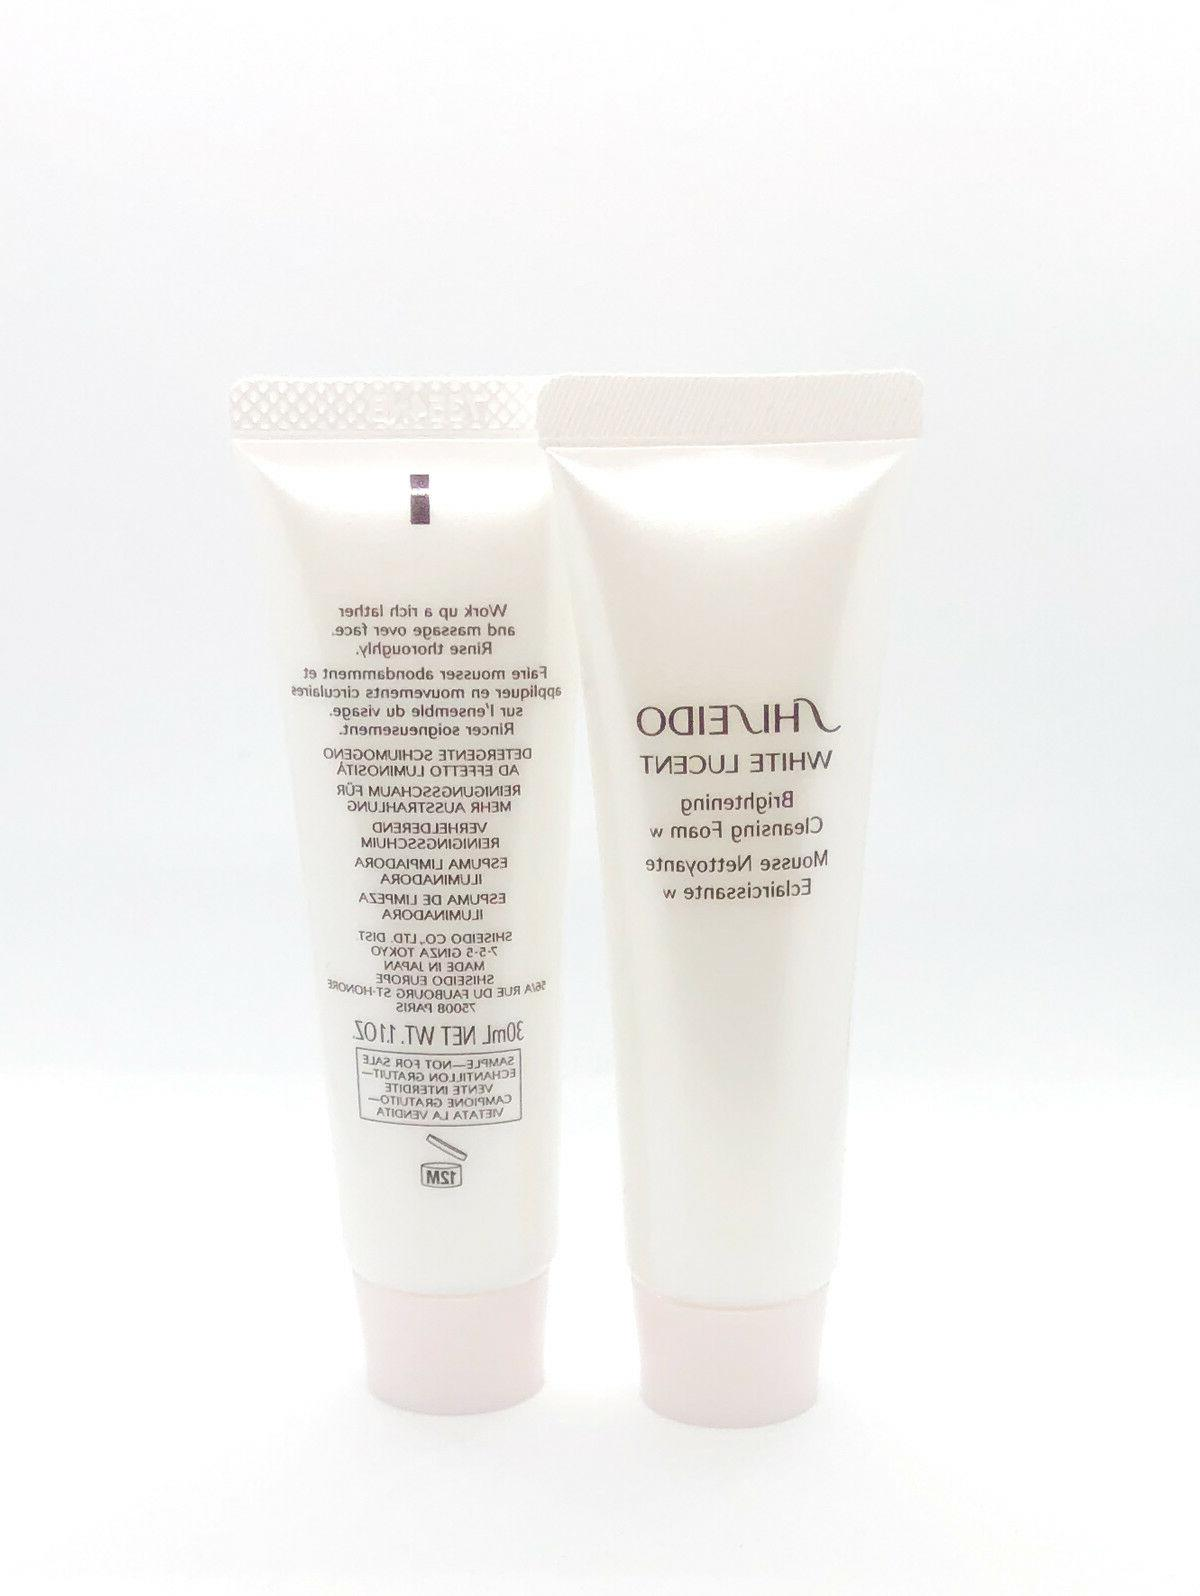 2 x white lucent brightening cleansing foam